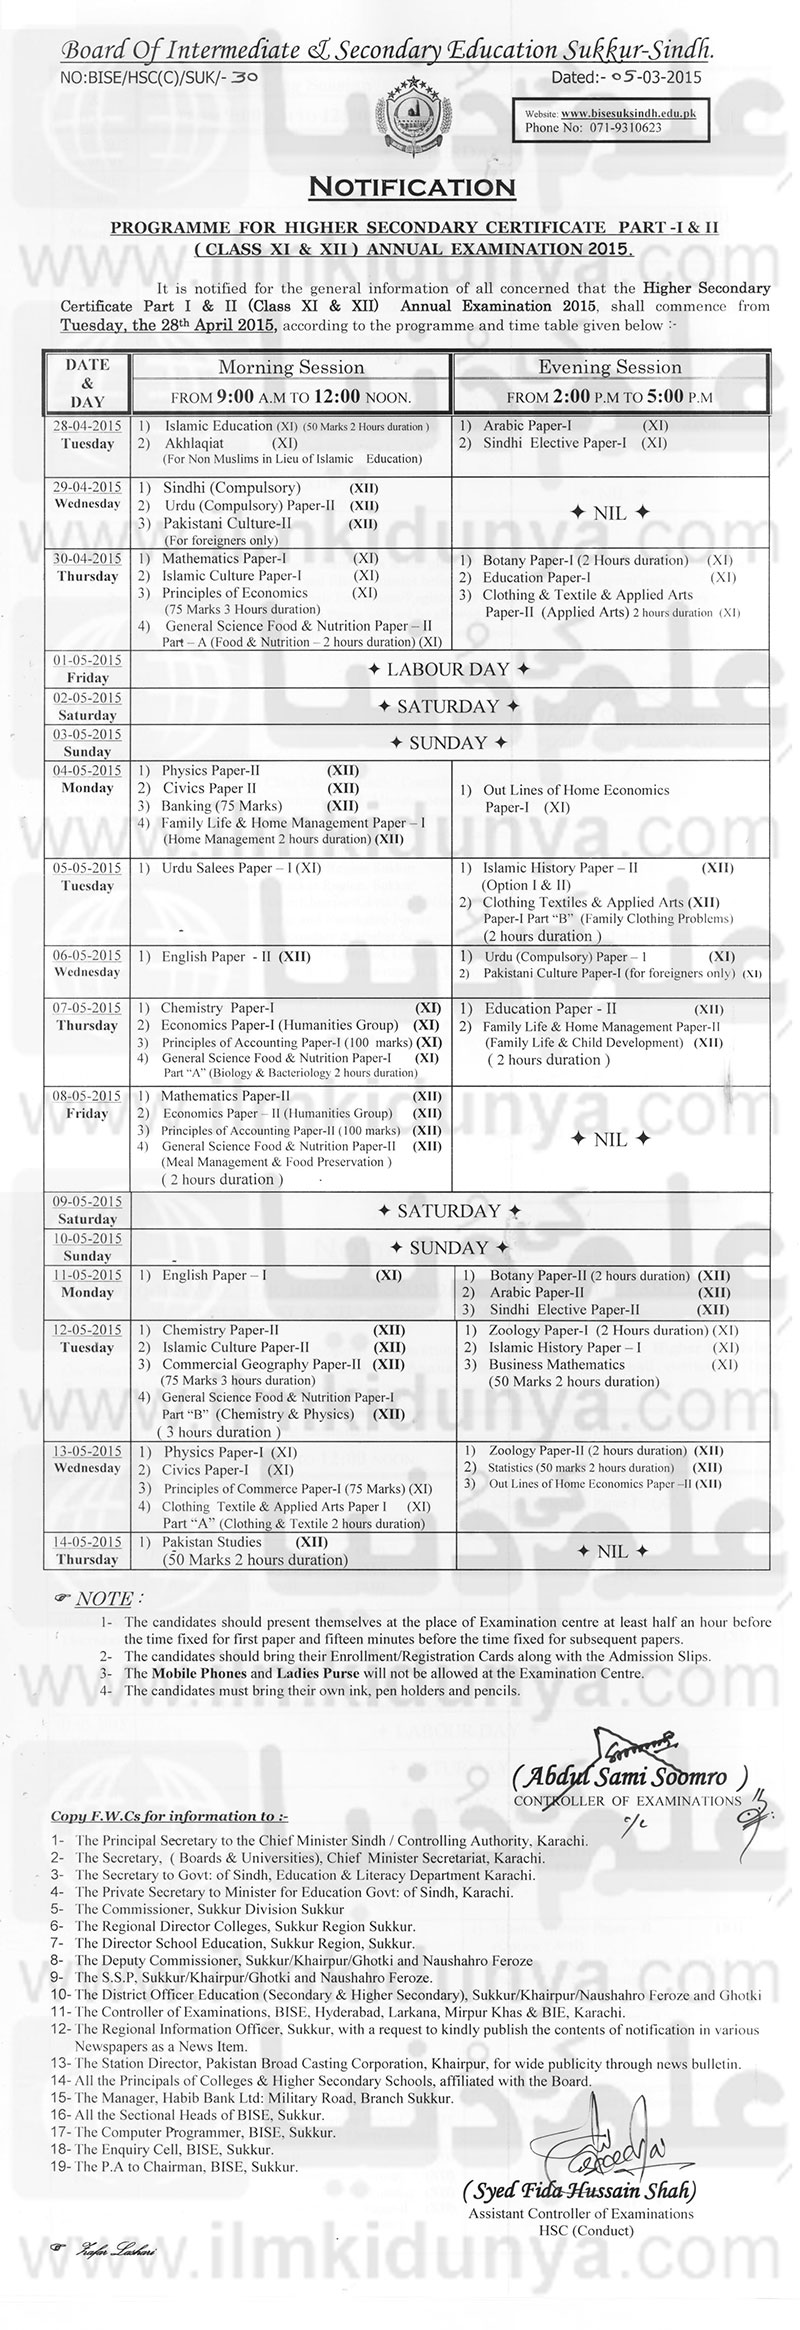 Image gallery matric result 2013 bise sukkur for 9th class time table